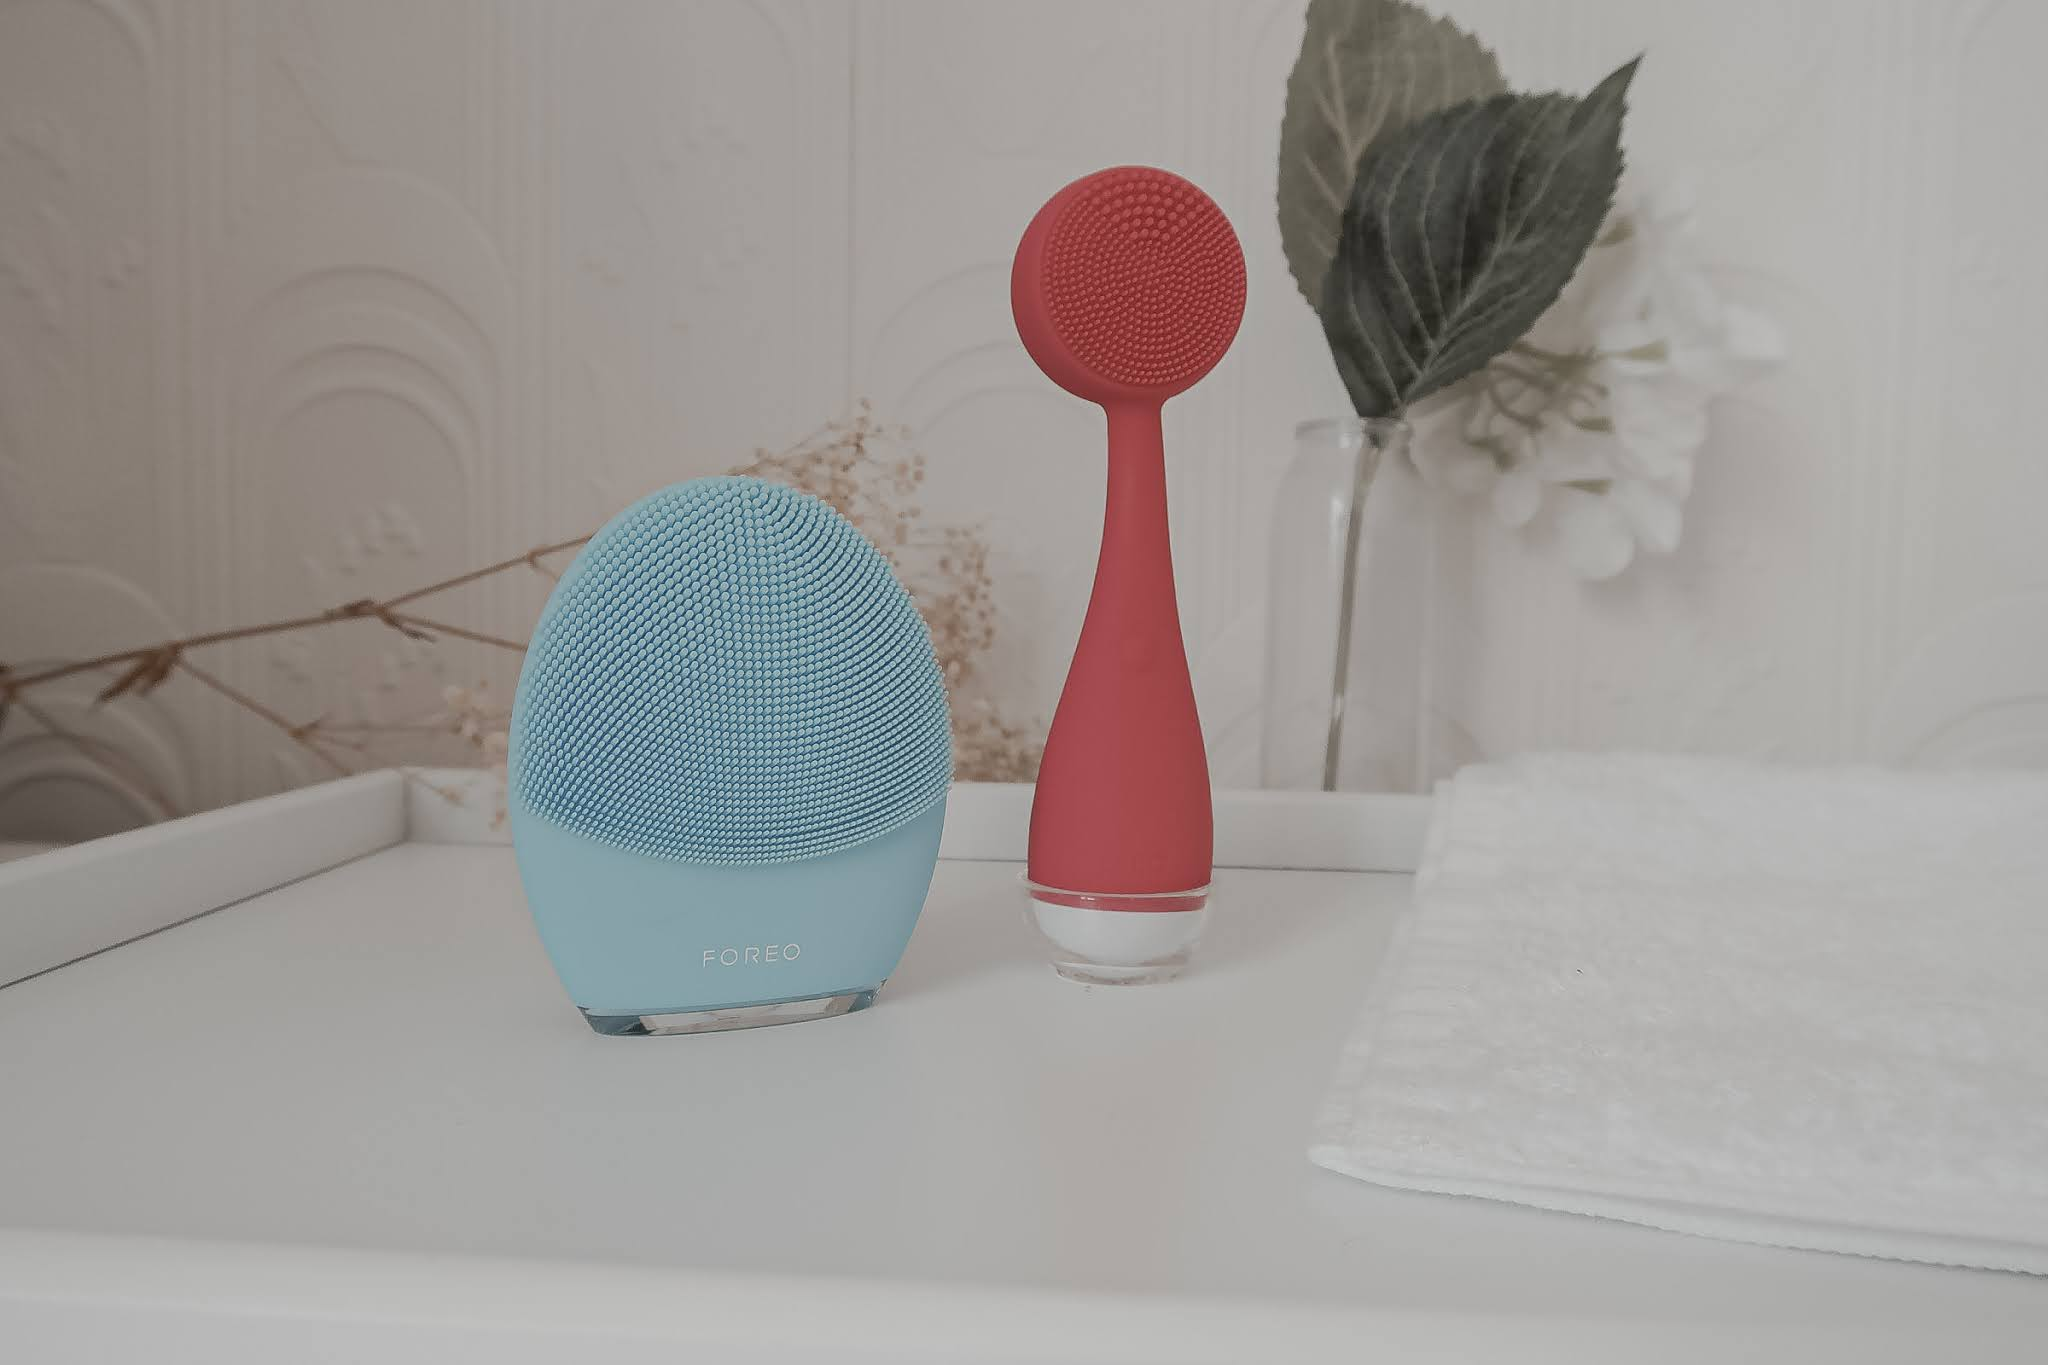 FOREO LUNA 3 and PMD Clean devices